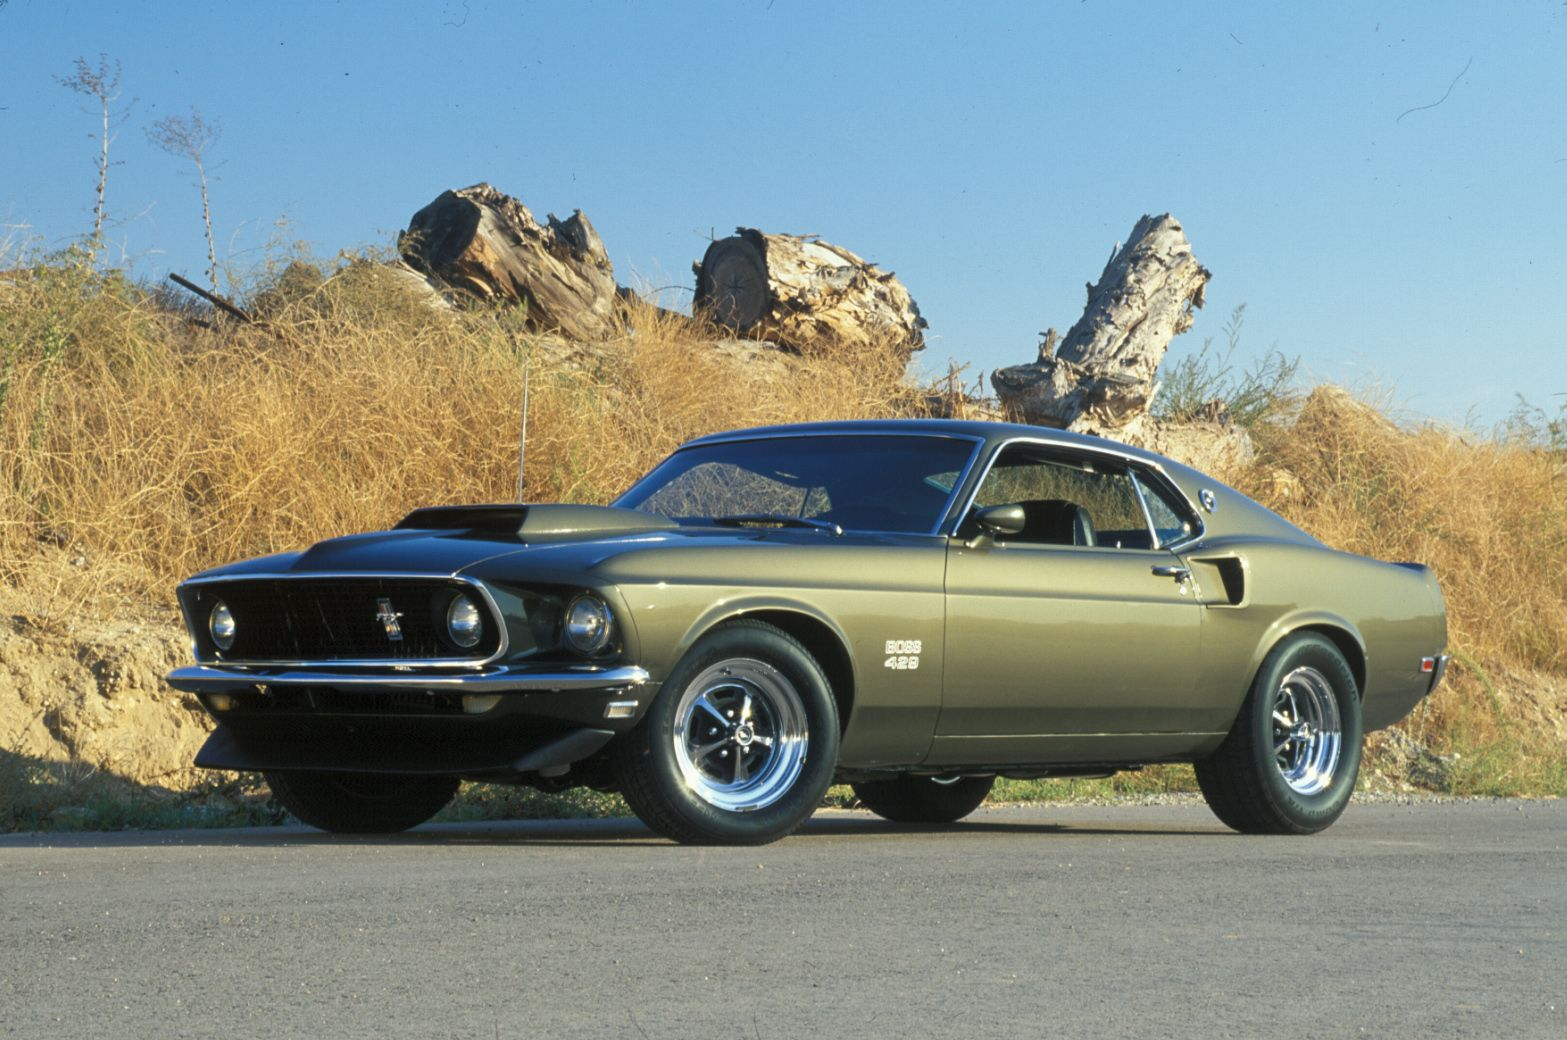 1969 Ford Mustang Shelby Gt350 And In Army Drab Green